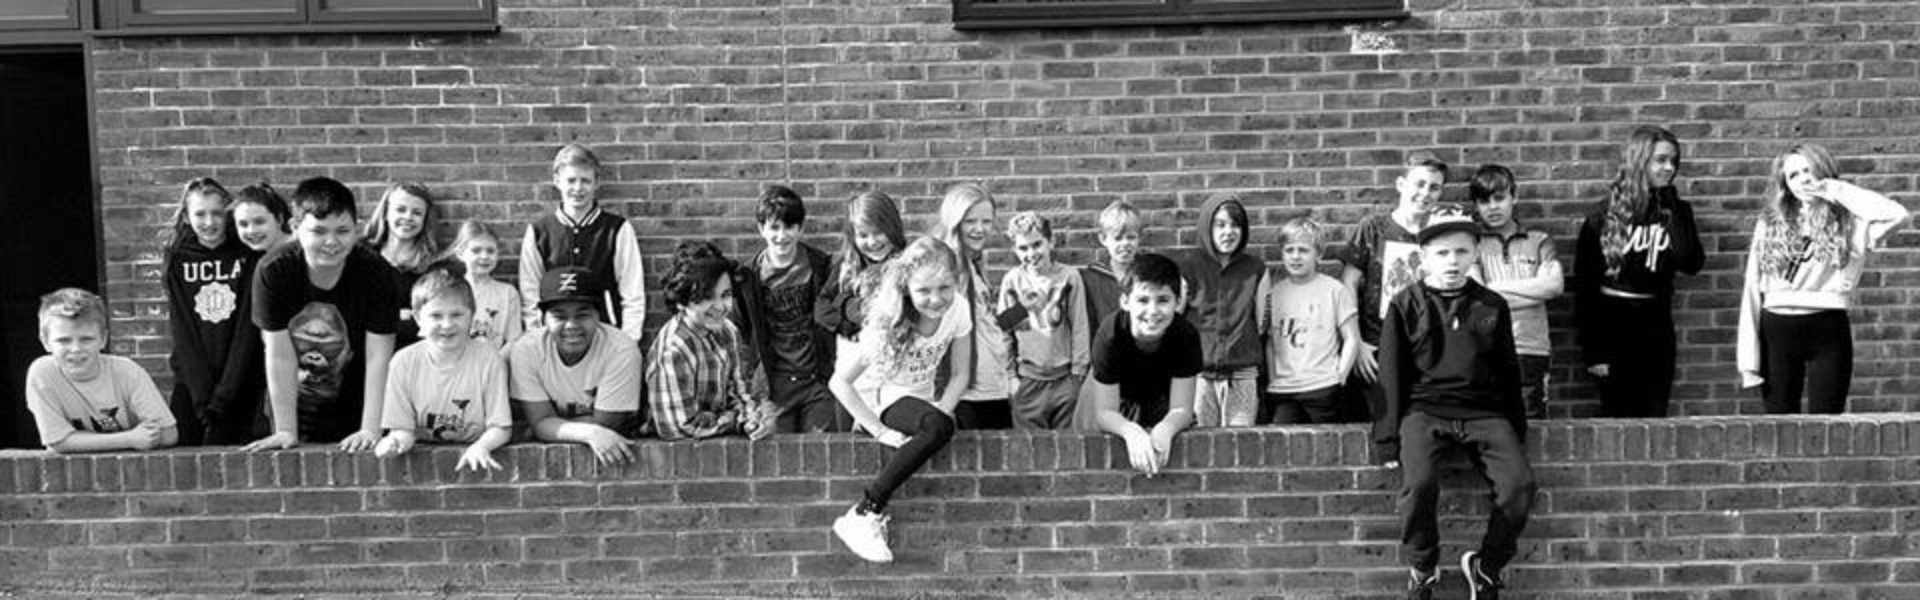 Urban City - The No.1 Street Dance School across Sussex